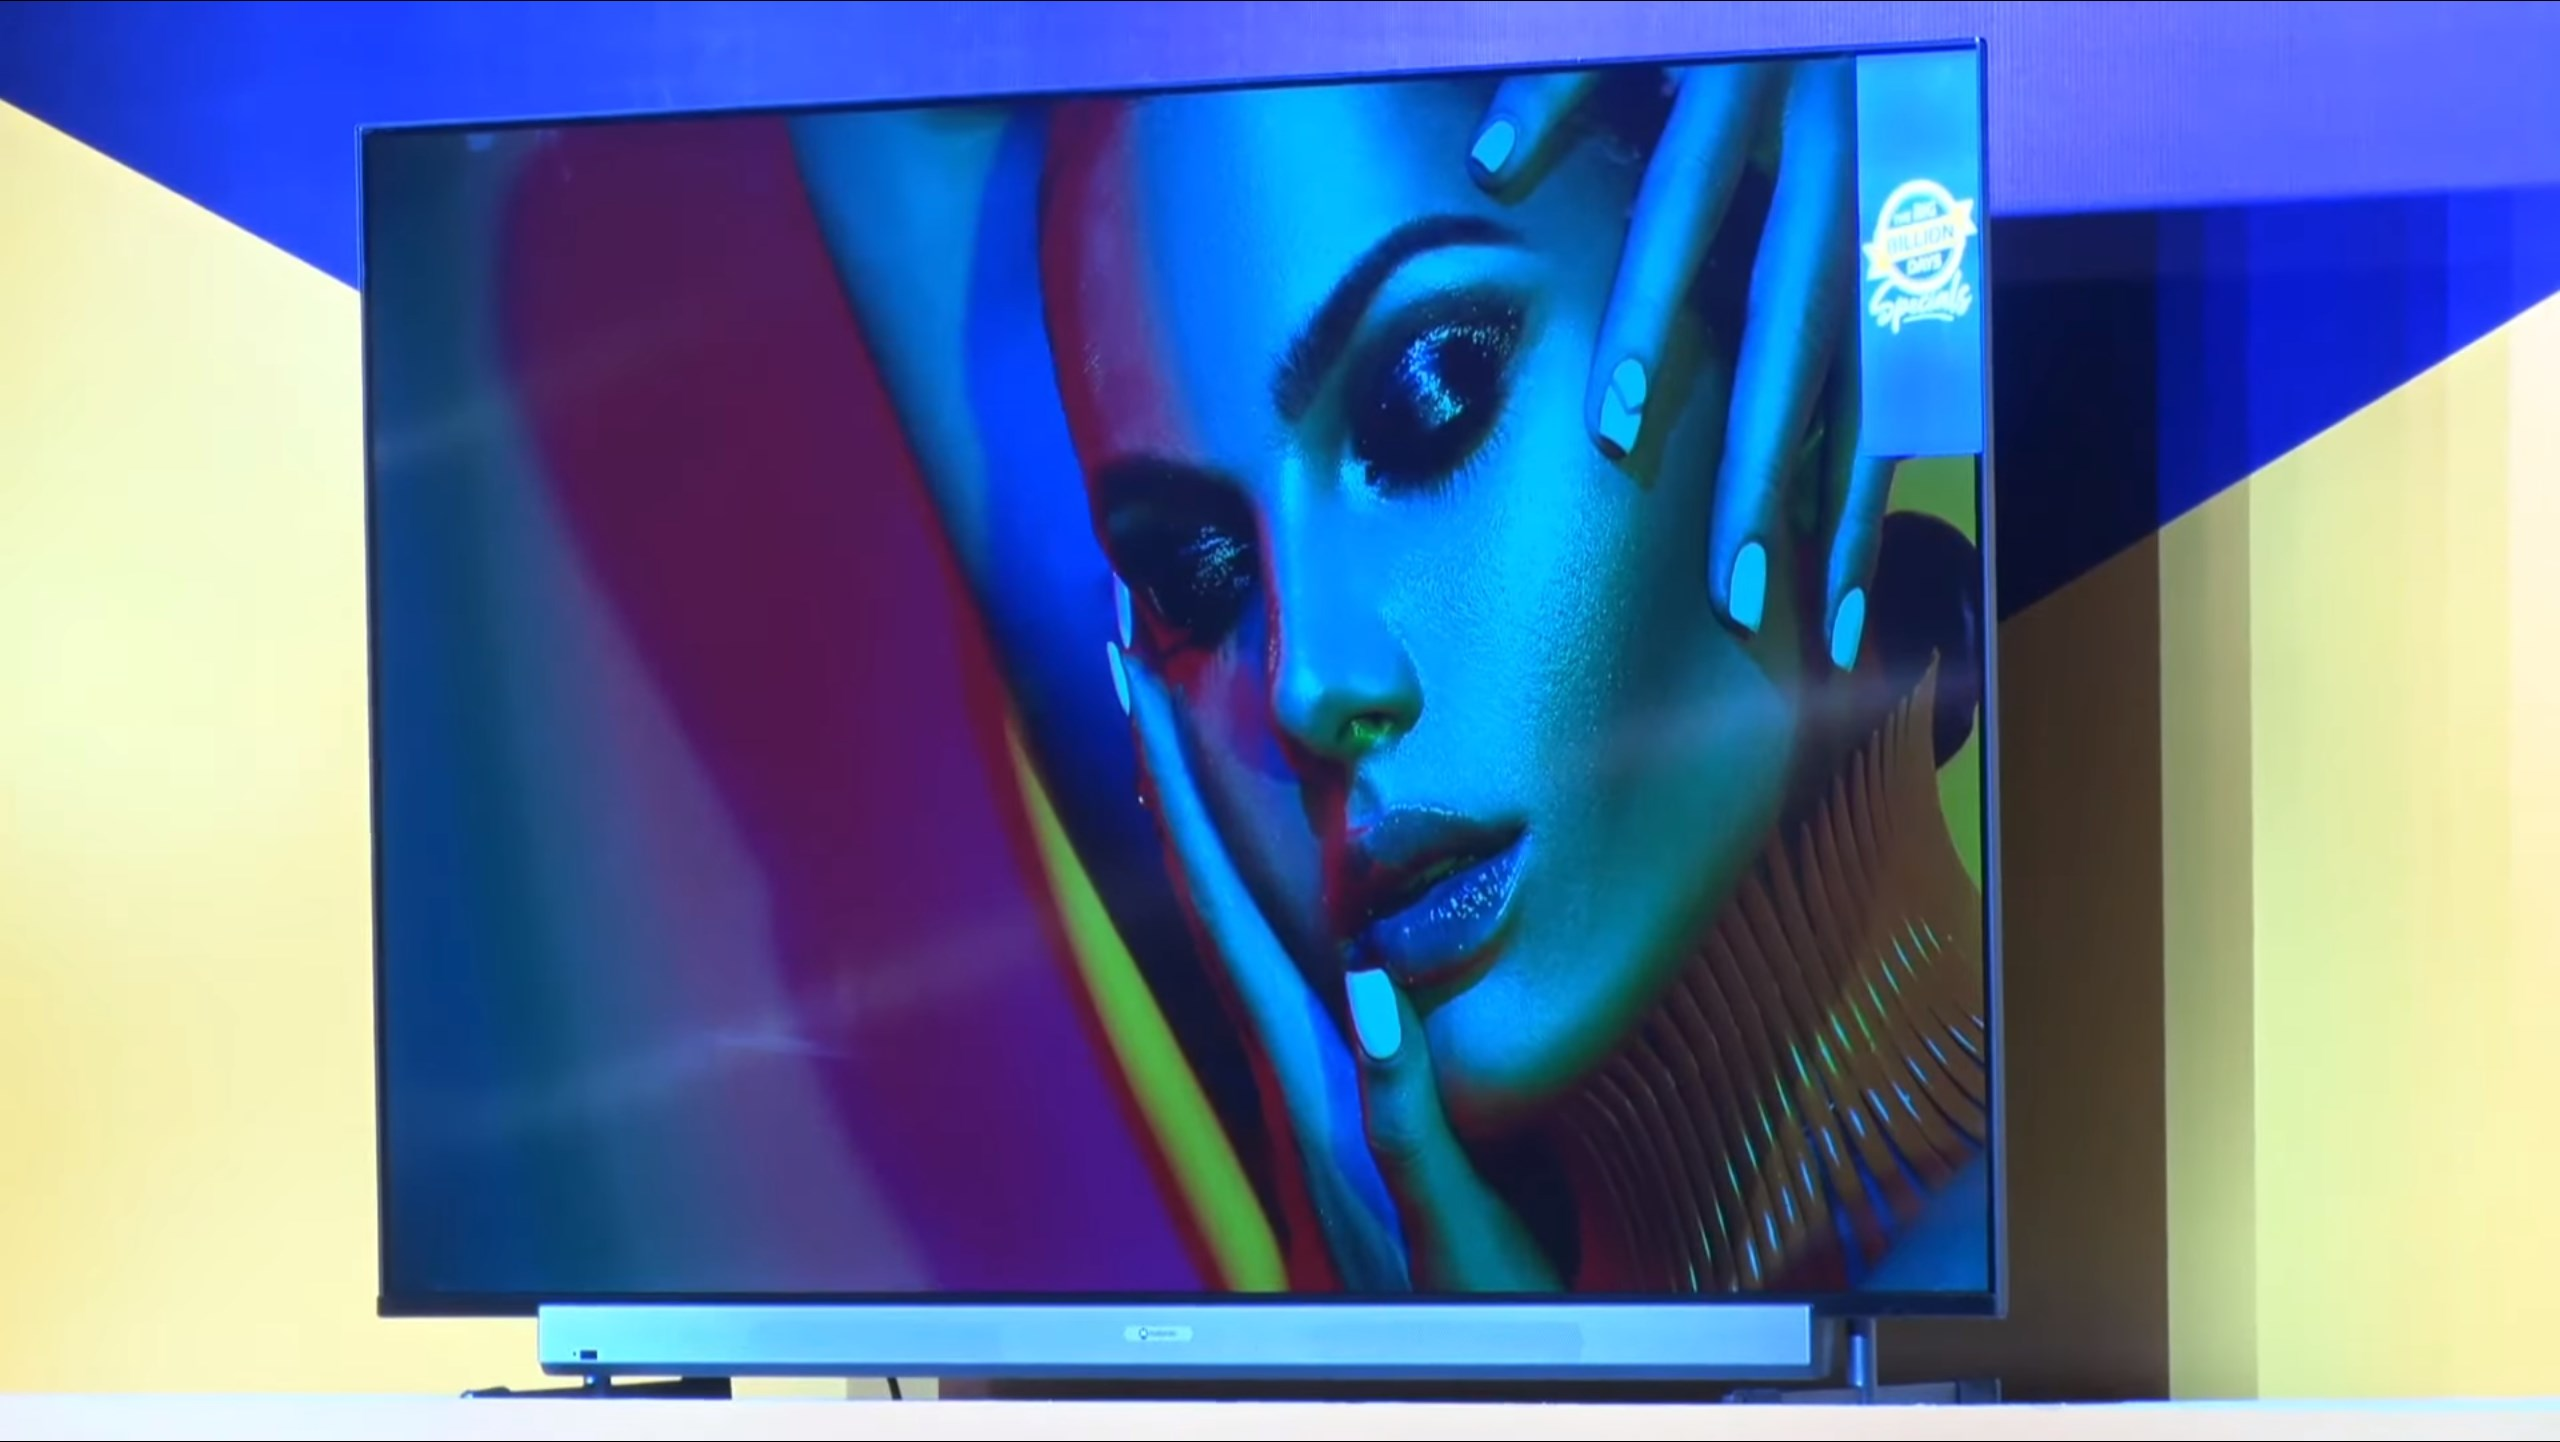 Motorola's official Android Smart TVs launched in India